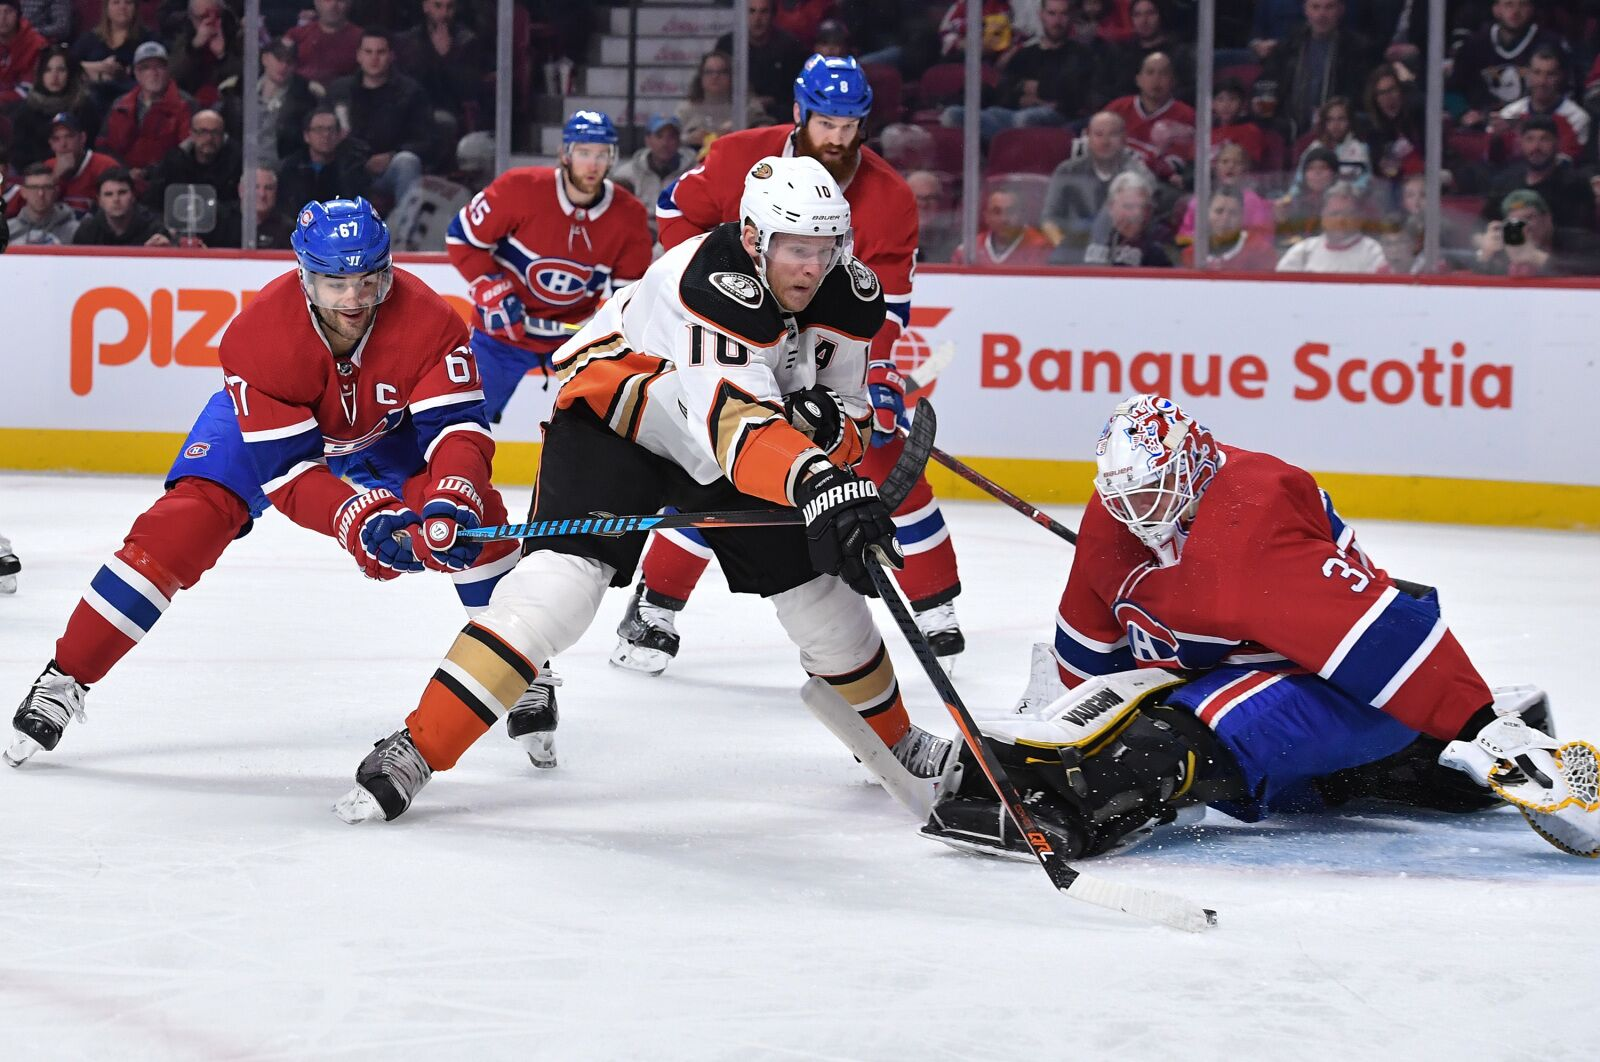 Montreal Canadiens Rumour: Corey Perry On Their Radar